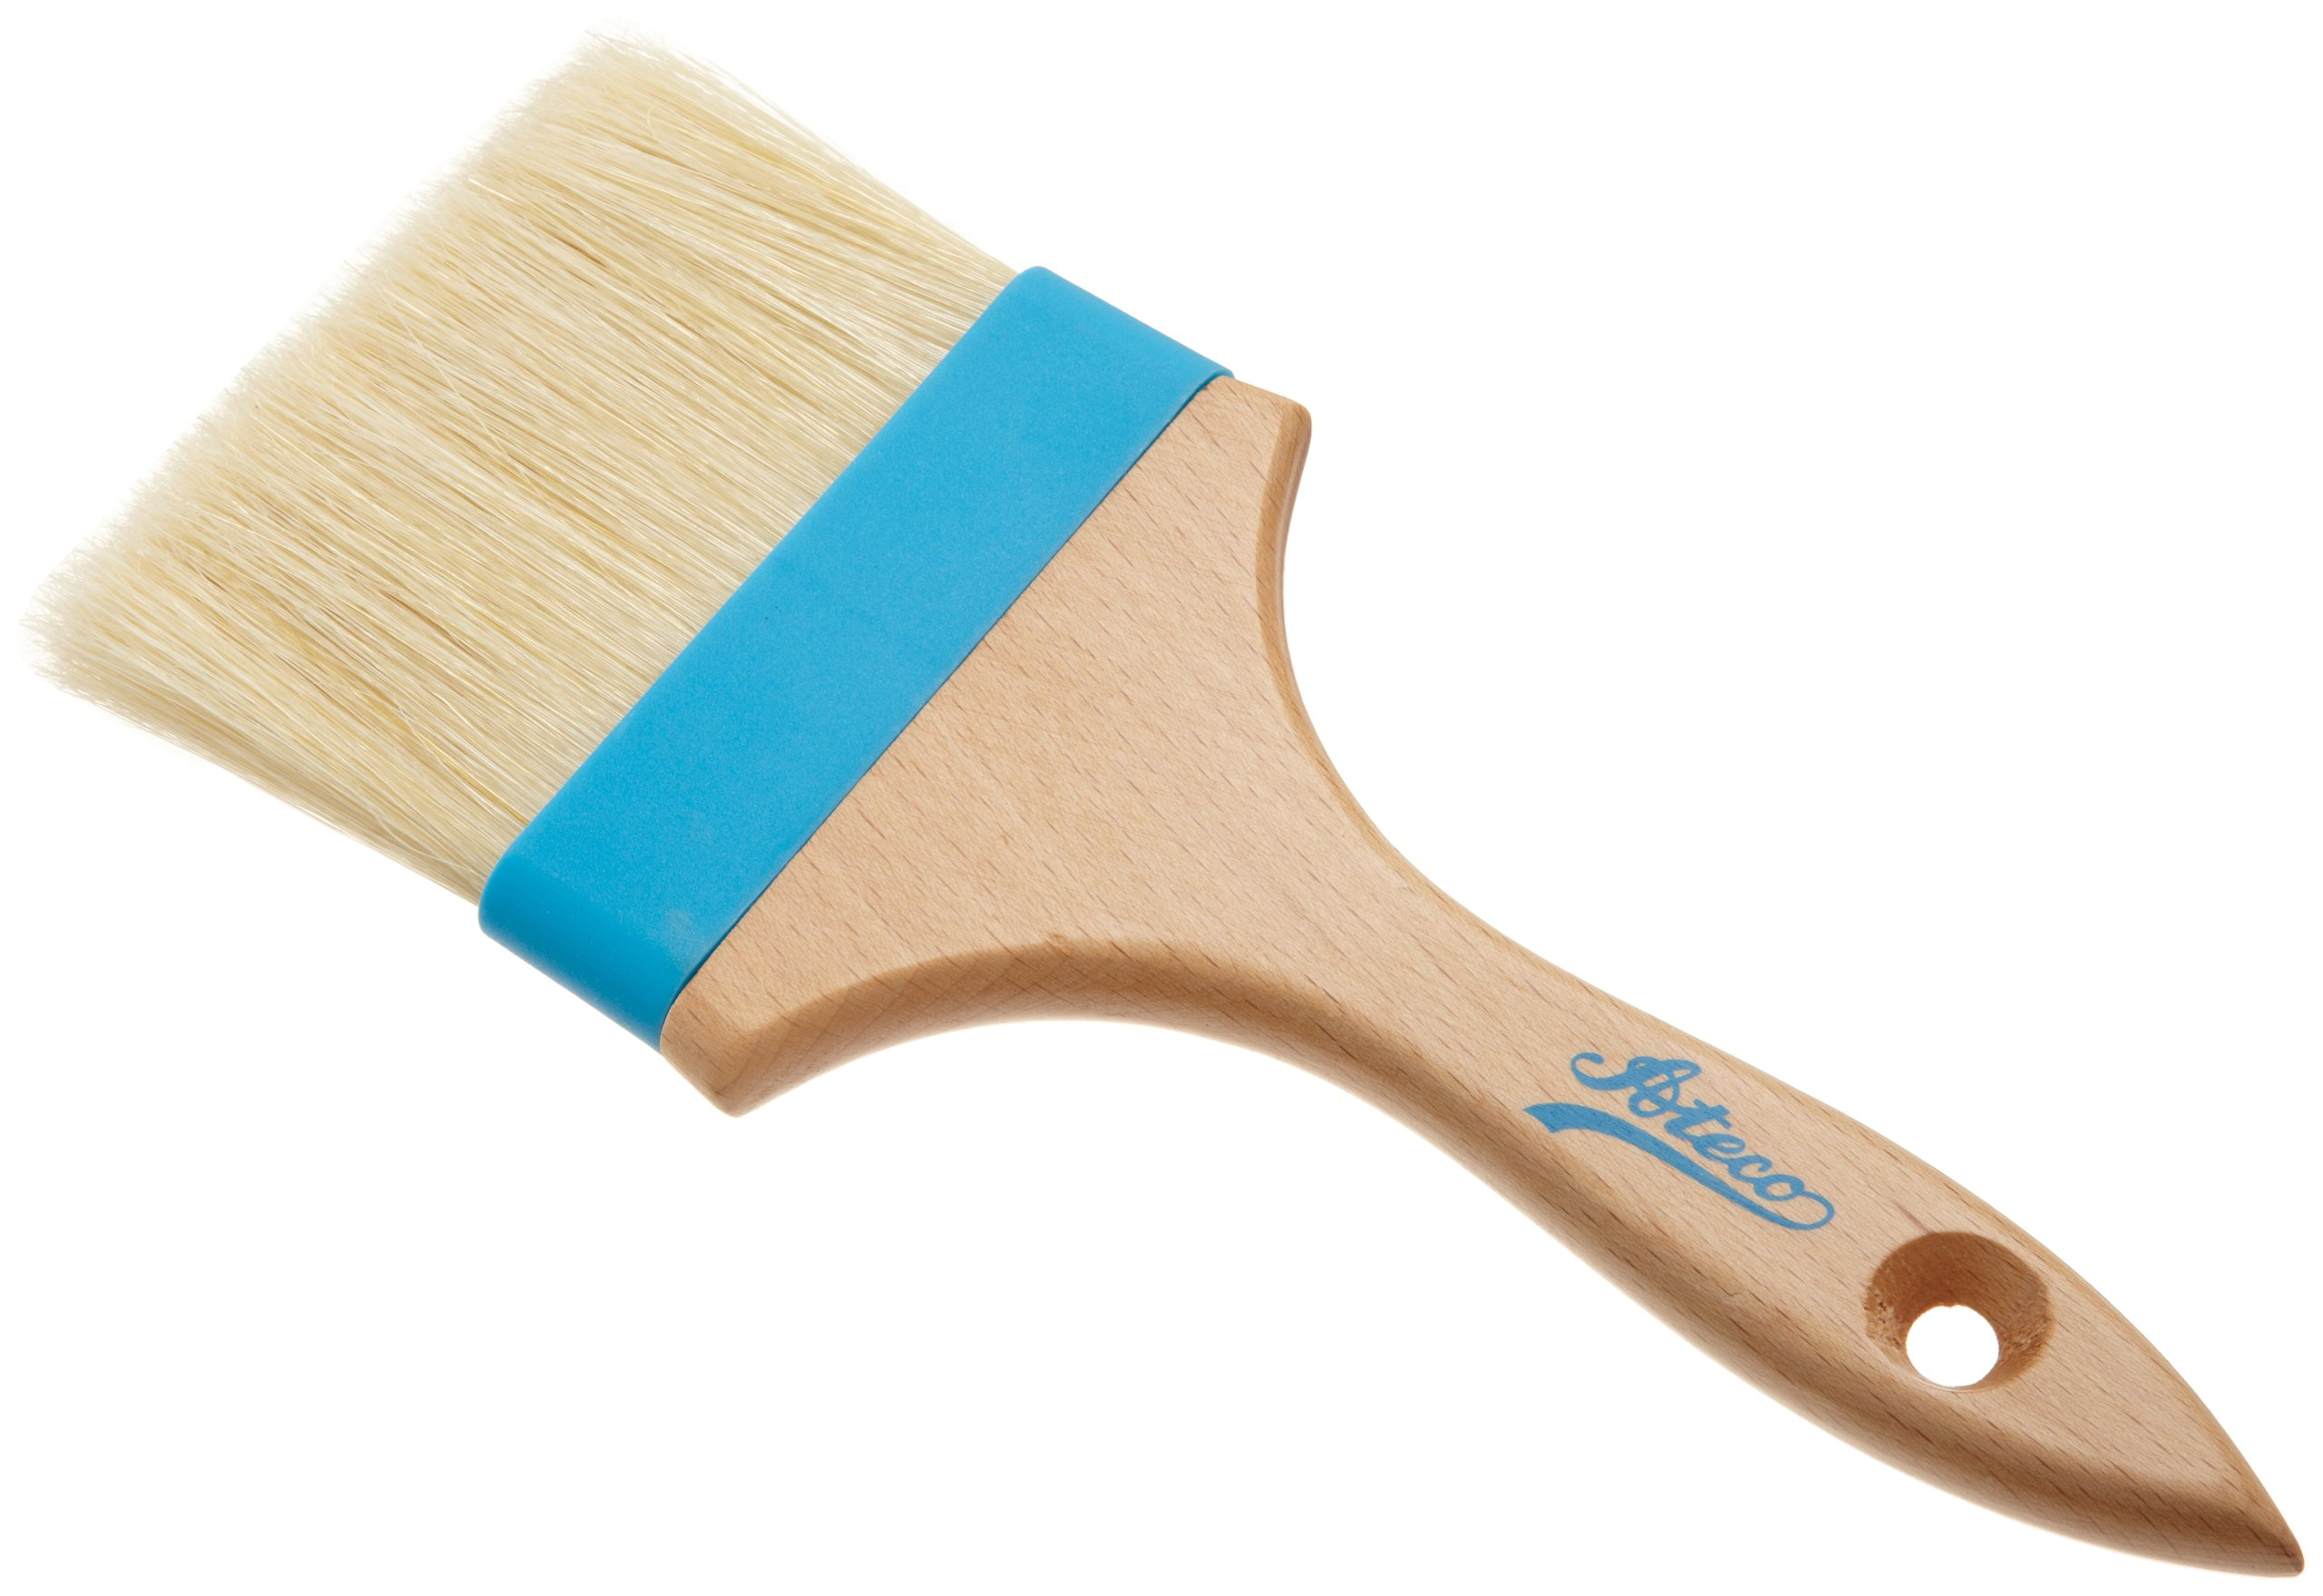 Ateco 60240 Pastry Brush, 4-Inch Wide Head with Natural White Boar Bristles, Composite Ferrule & Wood Handle